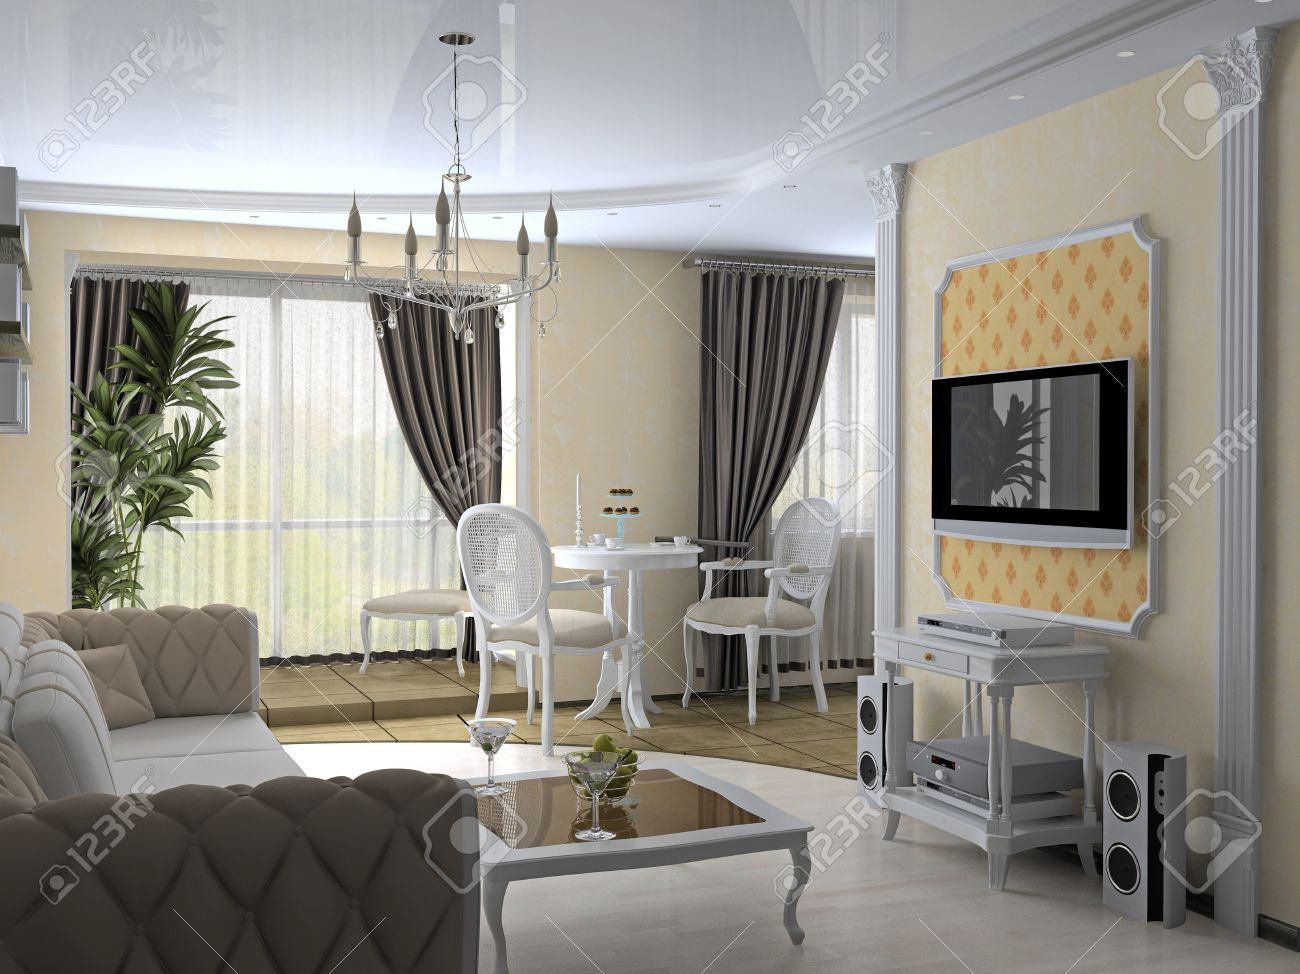 modern interior in classic style (3D rendering) Stock Photo - 4500749